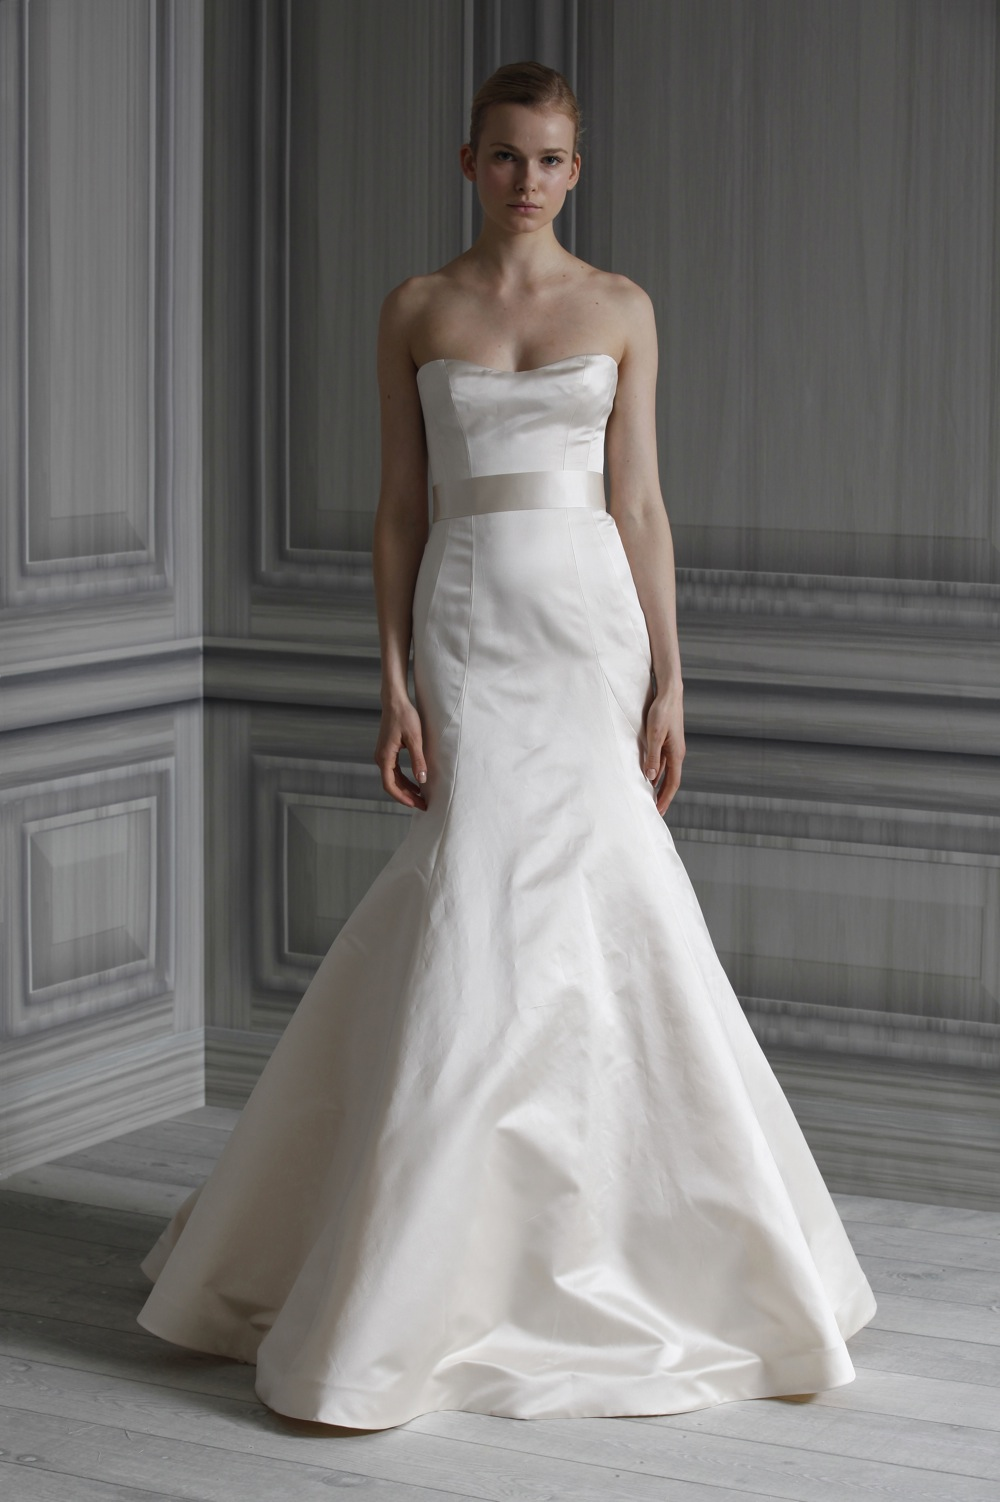 Wedding-dress-monique-lhuillier-bridal-gowns-spring-2012-simplicity.original